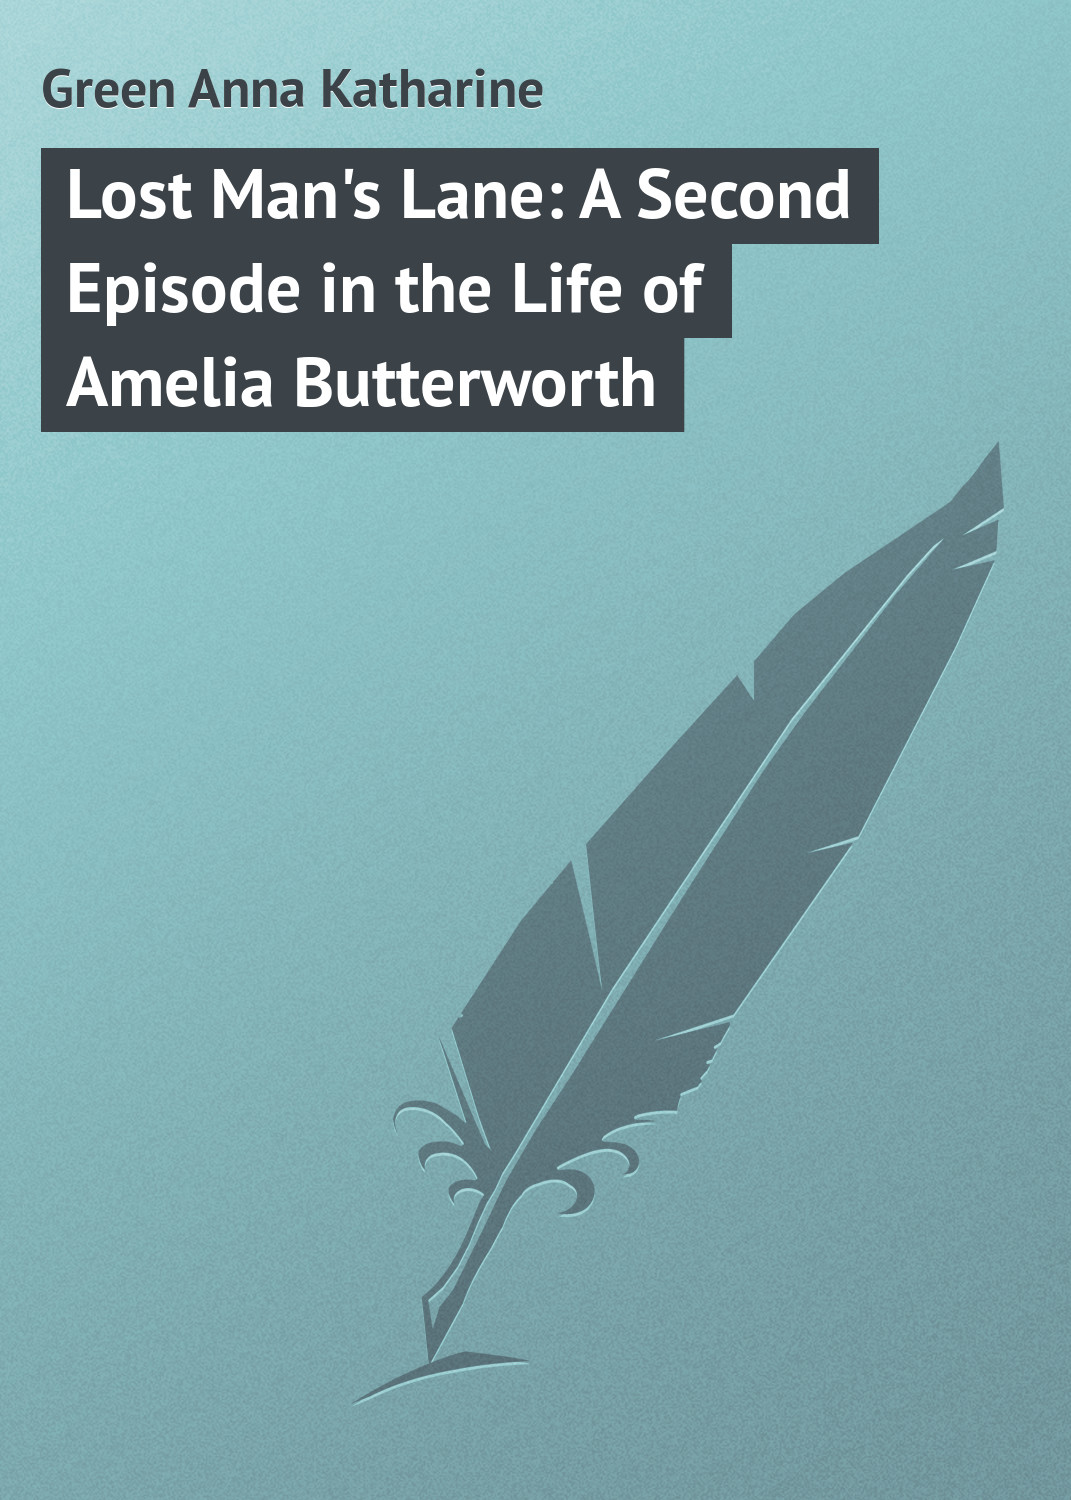 Green Anna Katharine Lost Man's Lane: A Second Episode in the Life of Amelia Butterworth green anna katharine the mystery of the hasty arrow